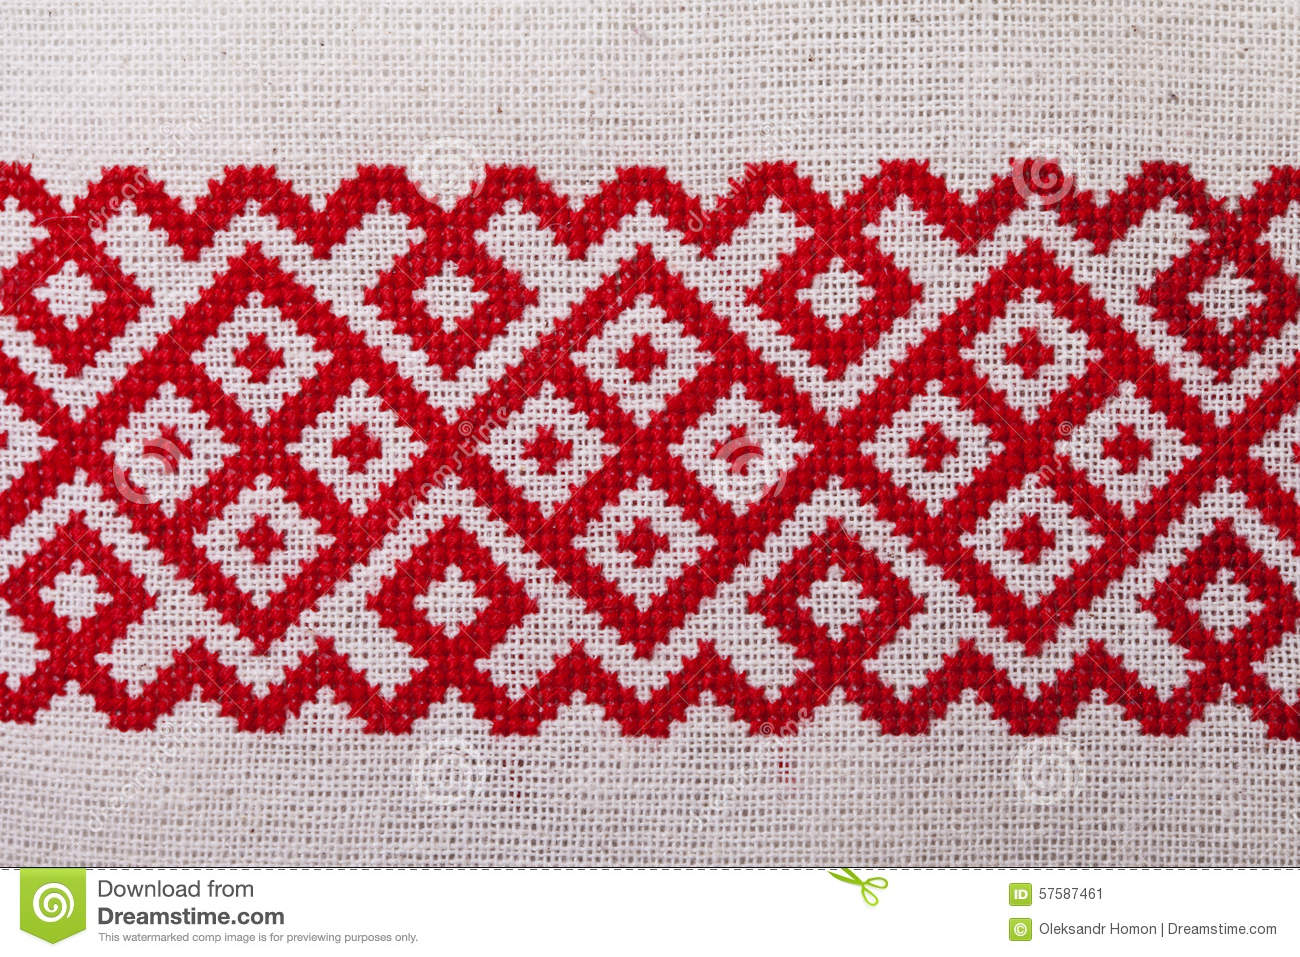 Ukrainian Embroidery On The Black Fabric And Thread Embroidery On A Light Wooden Table Stock